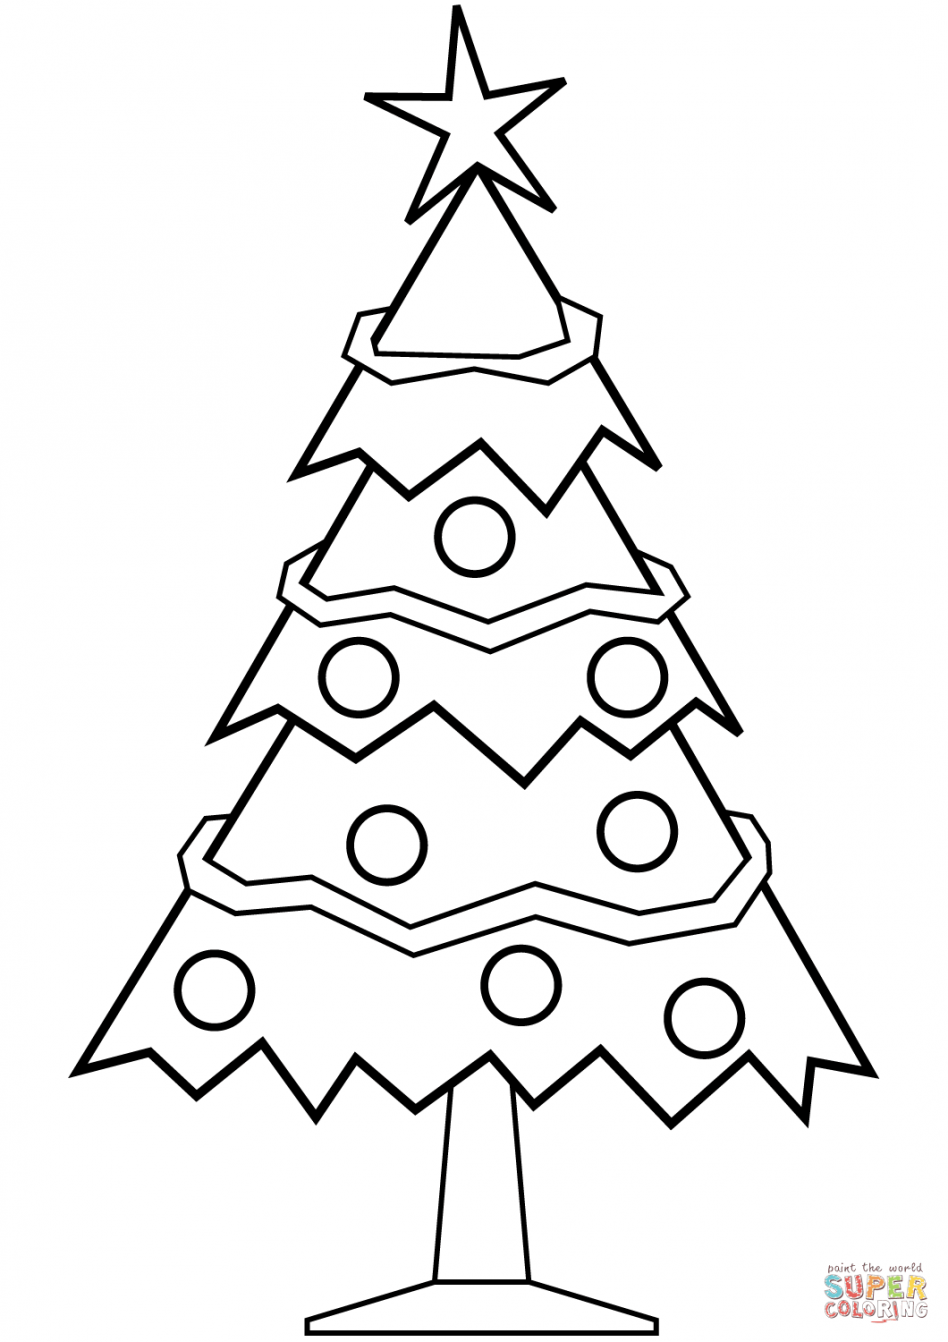 Christmas Tree clipart easy Pages Pages Christmas Christmas Easy